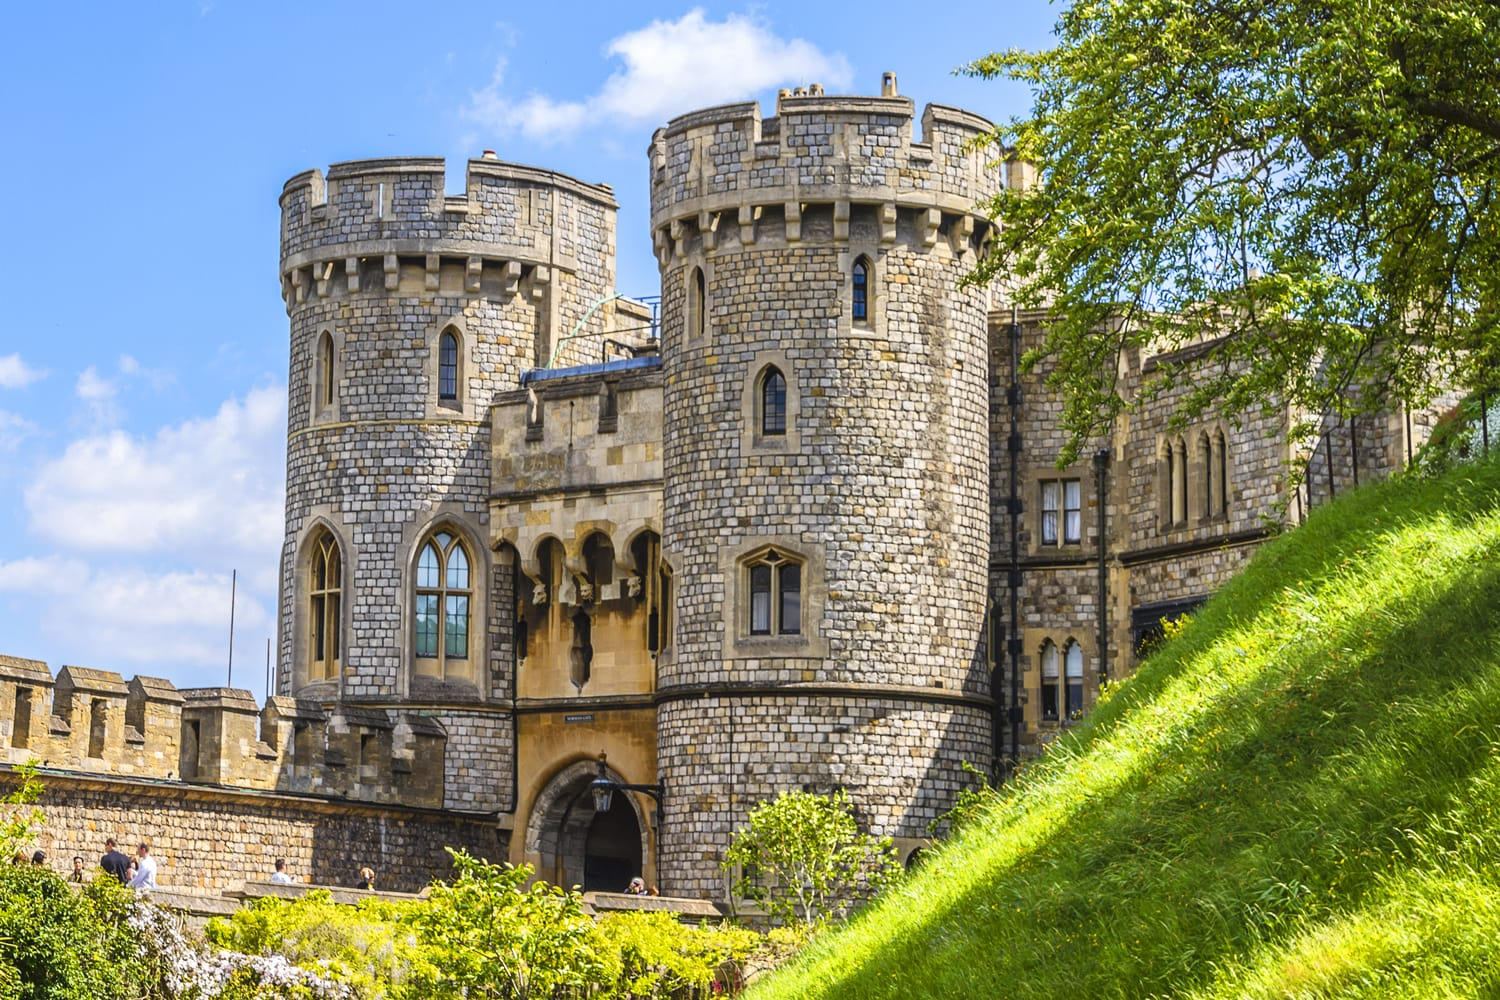 The ancient castle in the UK